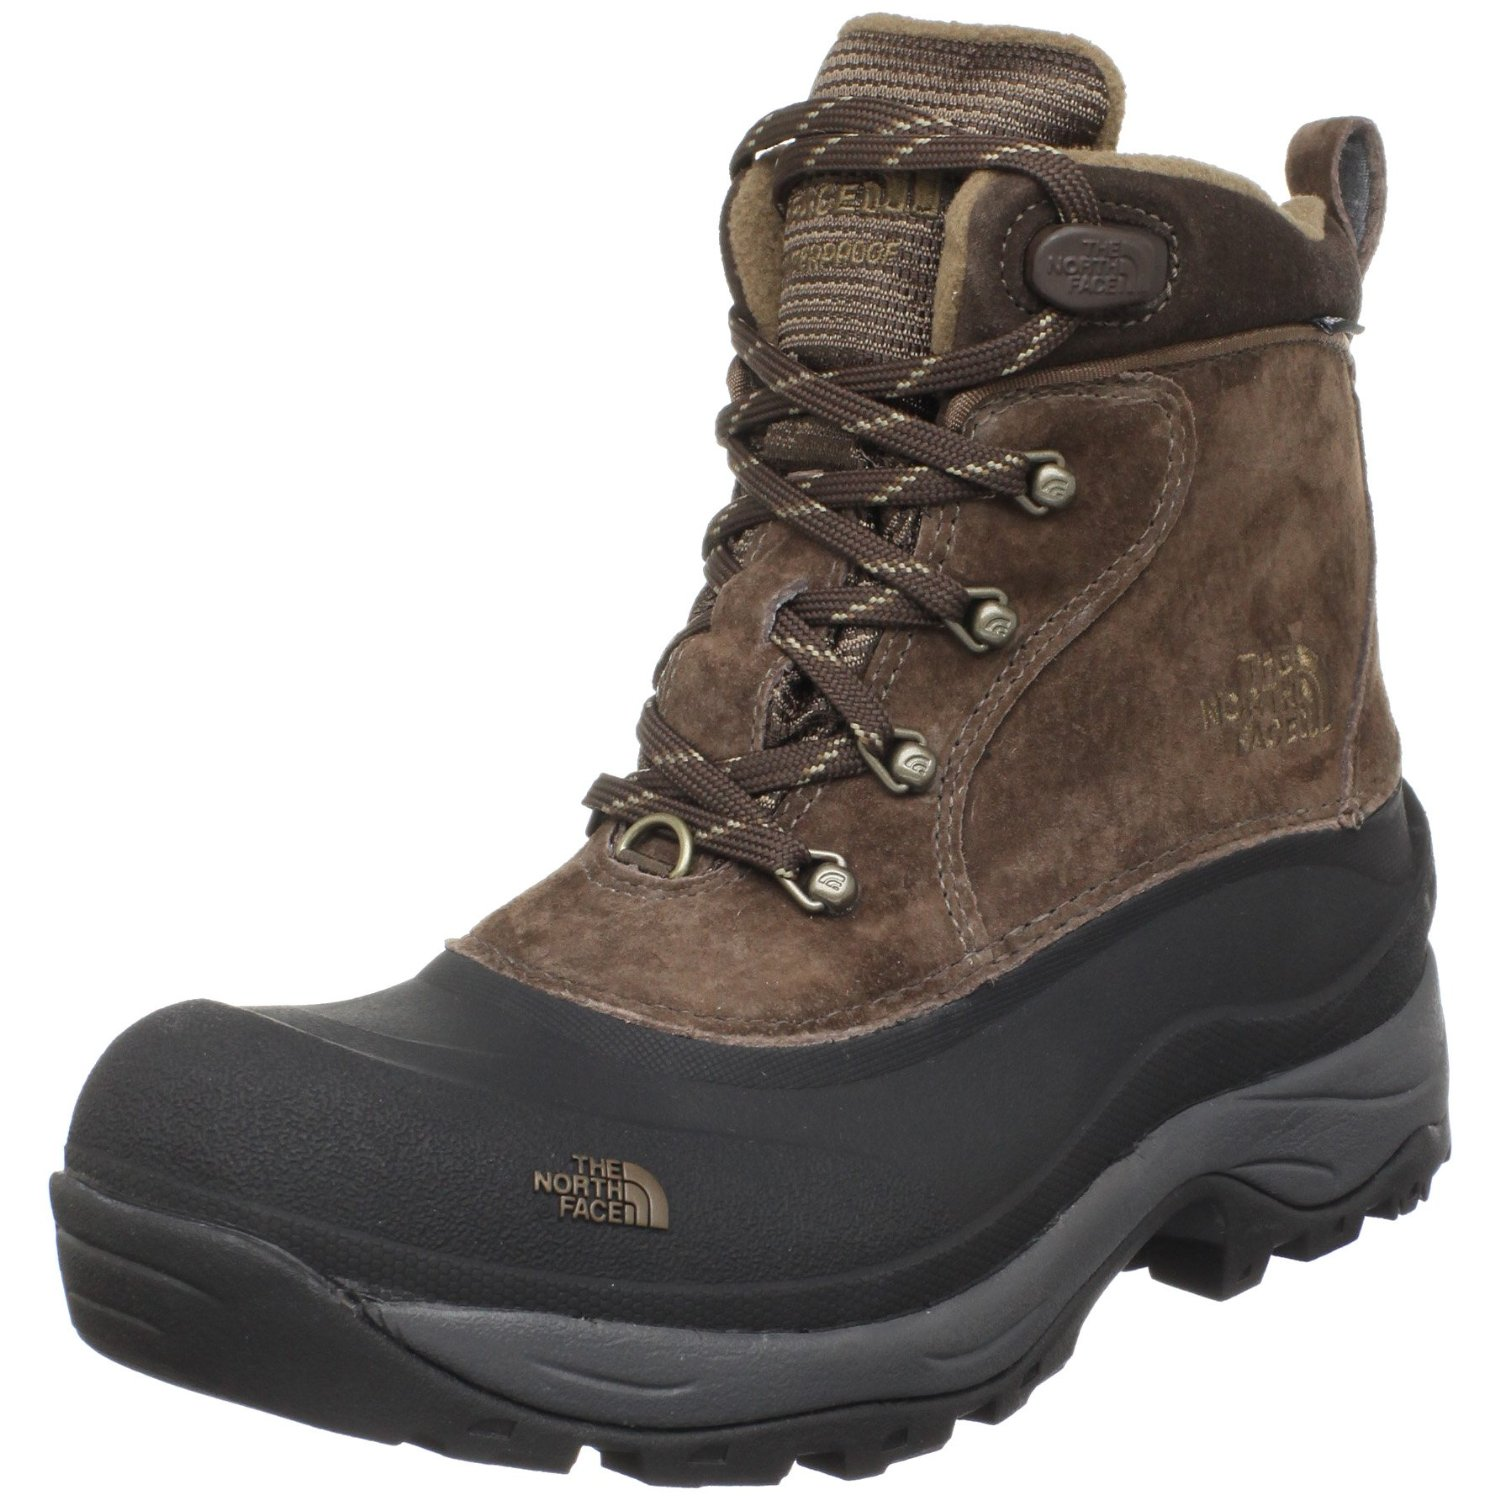 the mens chilkats insulated boot in brown for